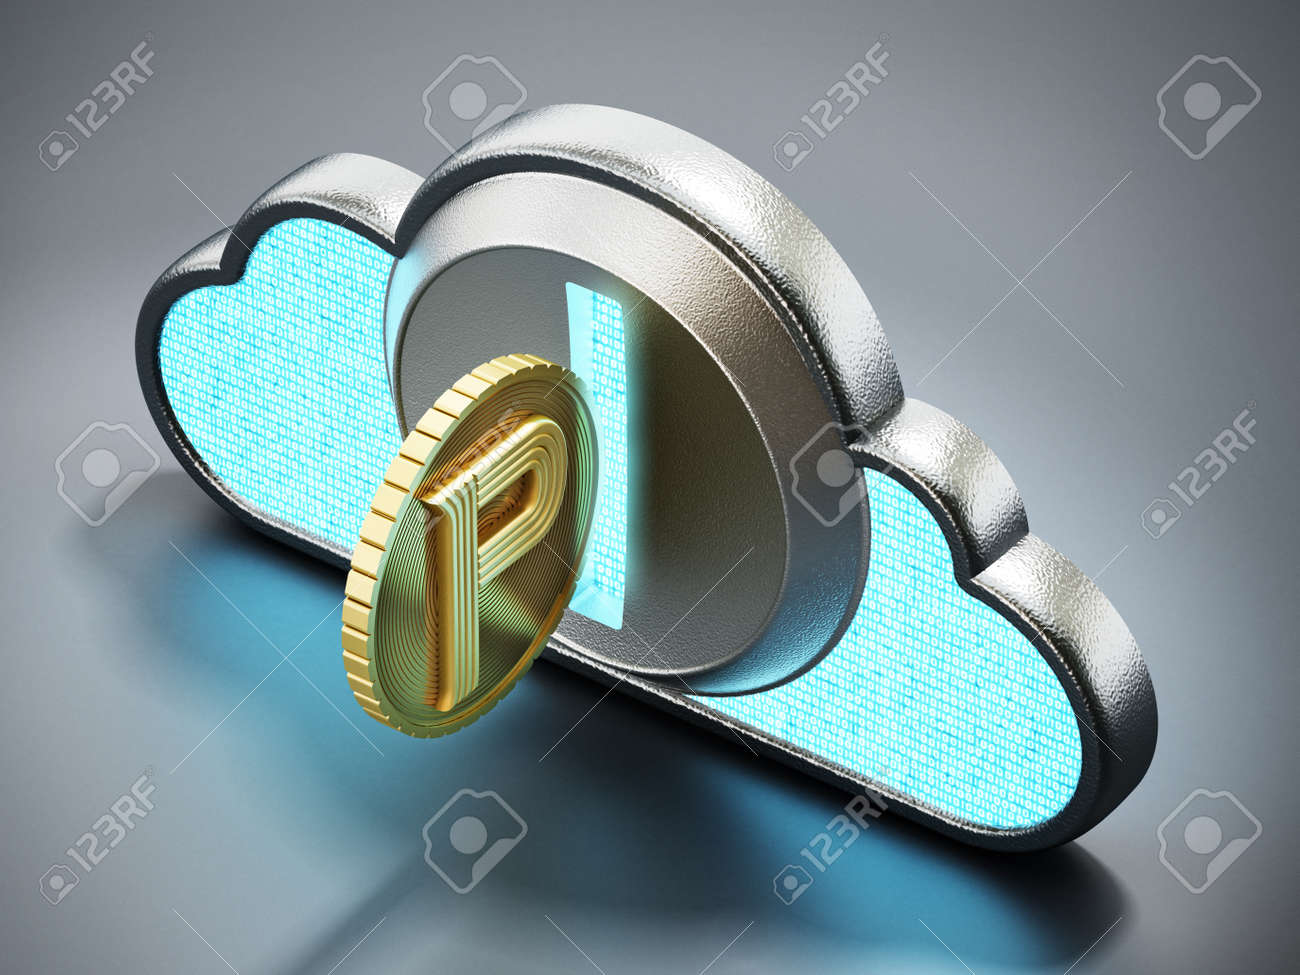 Cryptocurrency coin with cloud shaped coin counter. 3D illustration. - 172447459